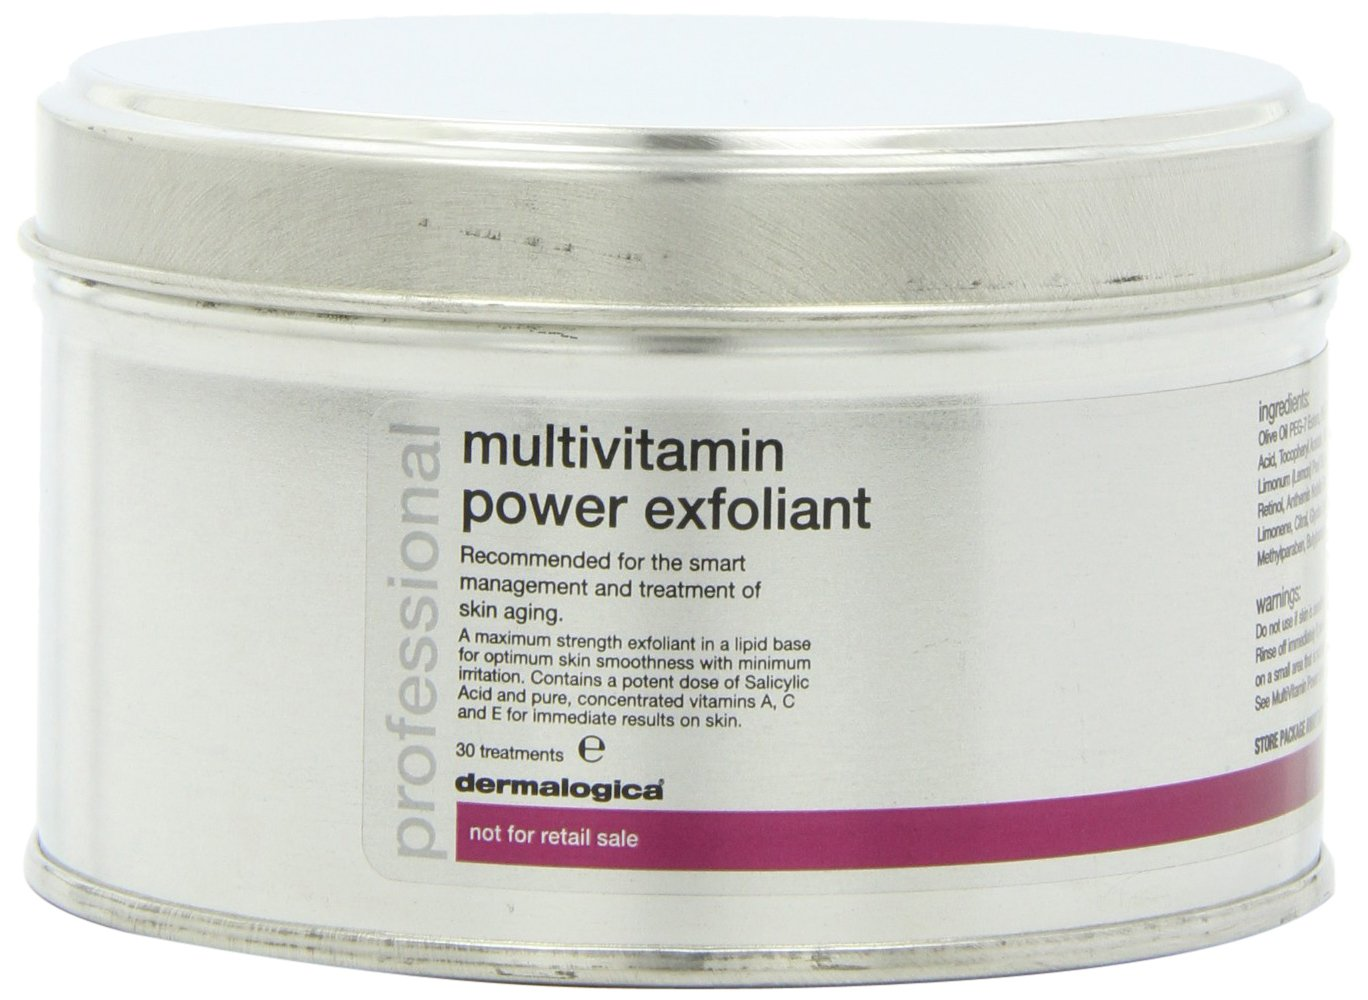 Dermalogica Multivitamin Power Exfoliant Kit